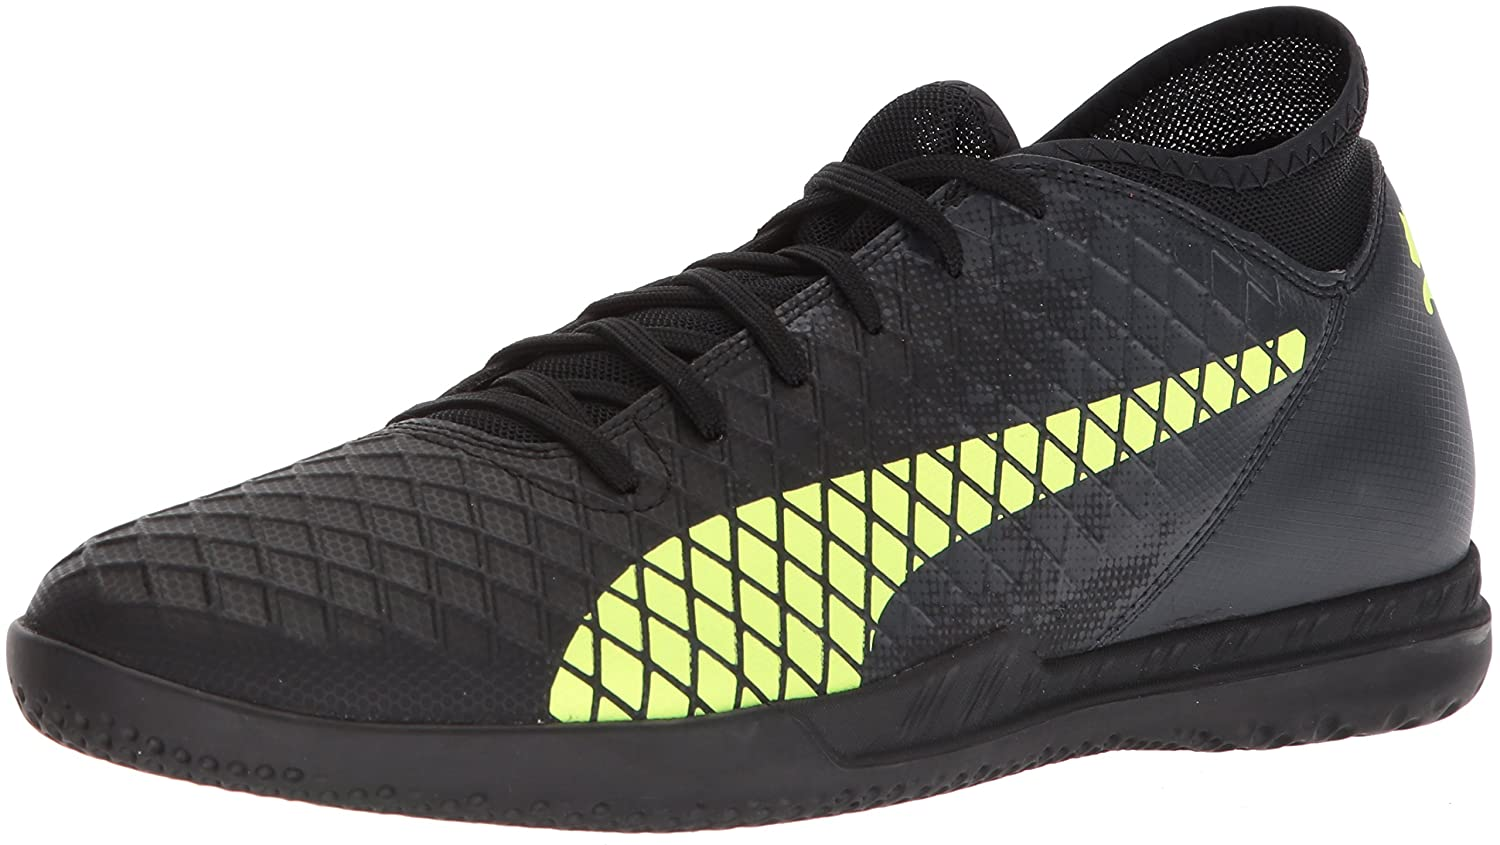 PUMA メンズ FUTURE 18.4 IT B071GL6D4M 13 D(M) US|Puma Black-fizzy Yellow-asphalt Puma Black-fizzy Yellow-asphalt 13 D(M) US